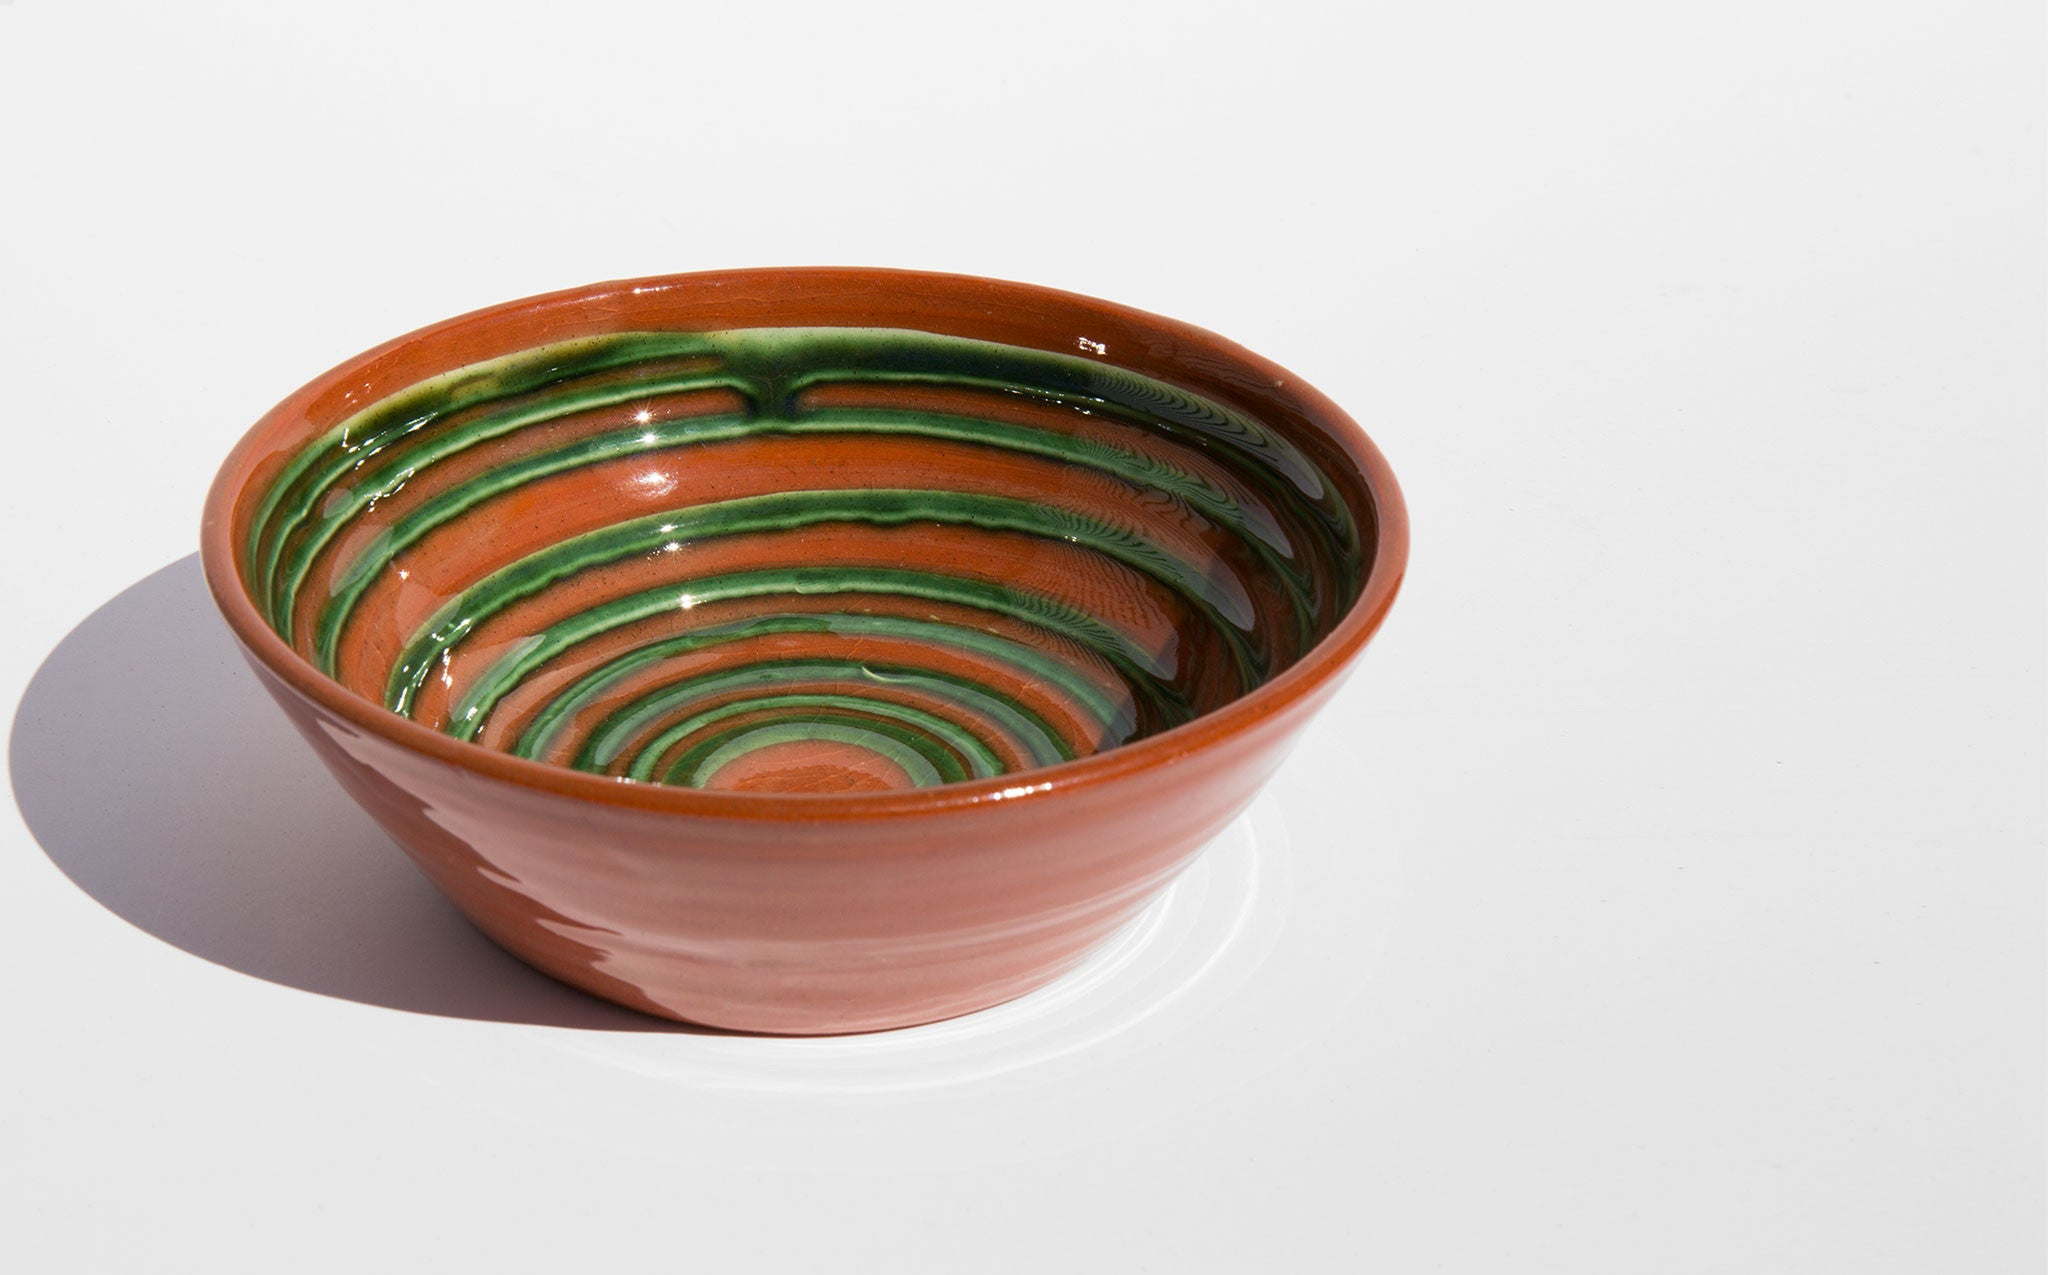 Samuji Koti Red Clay Bowl